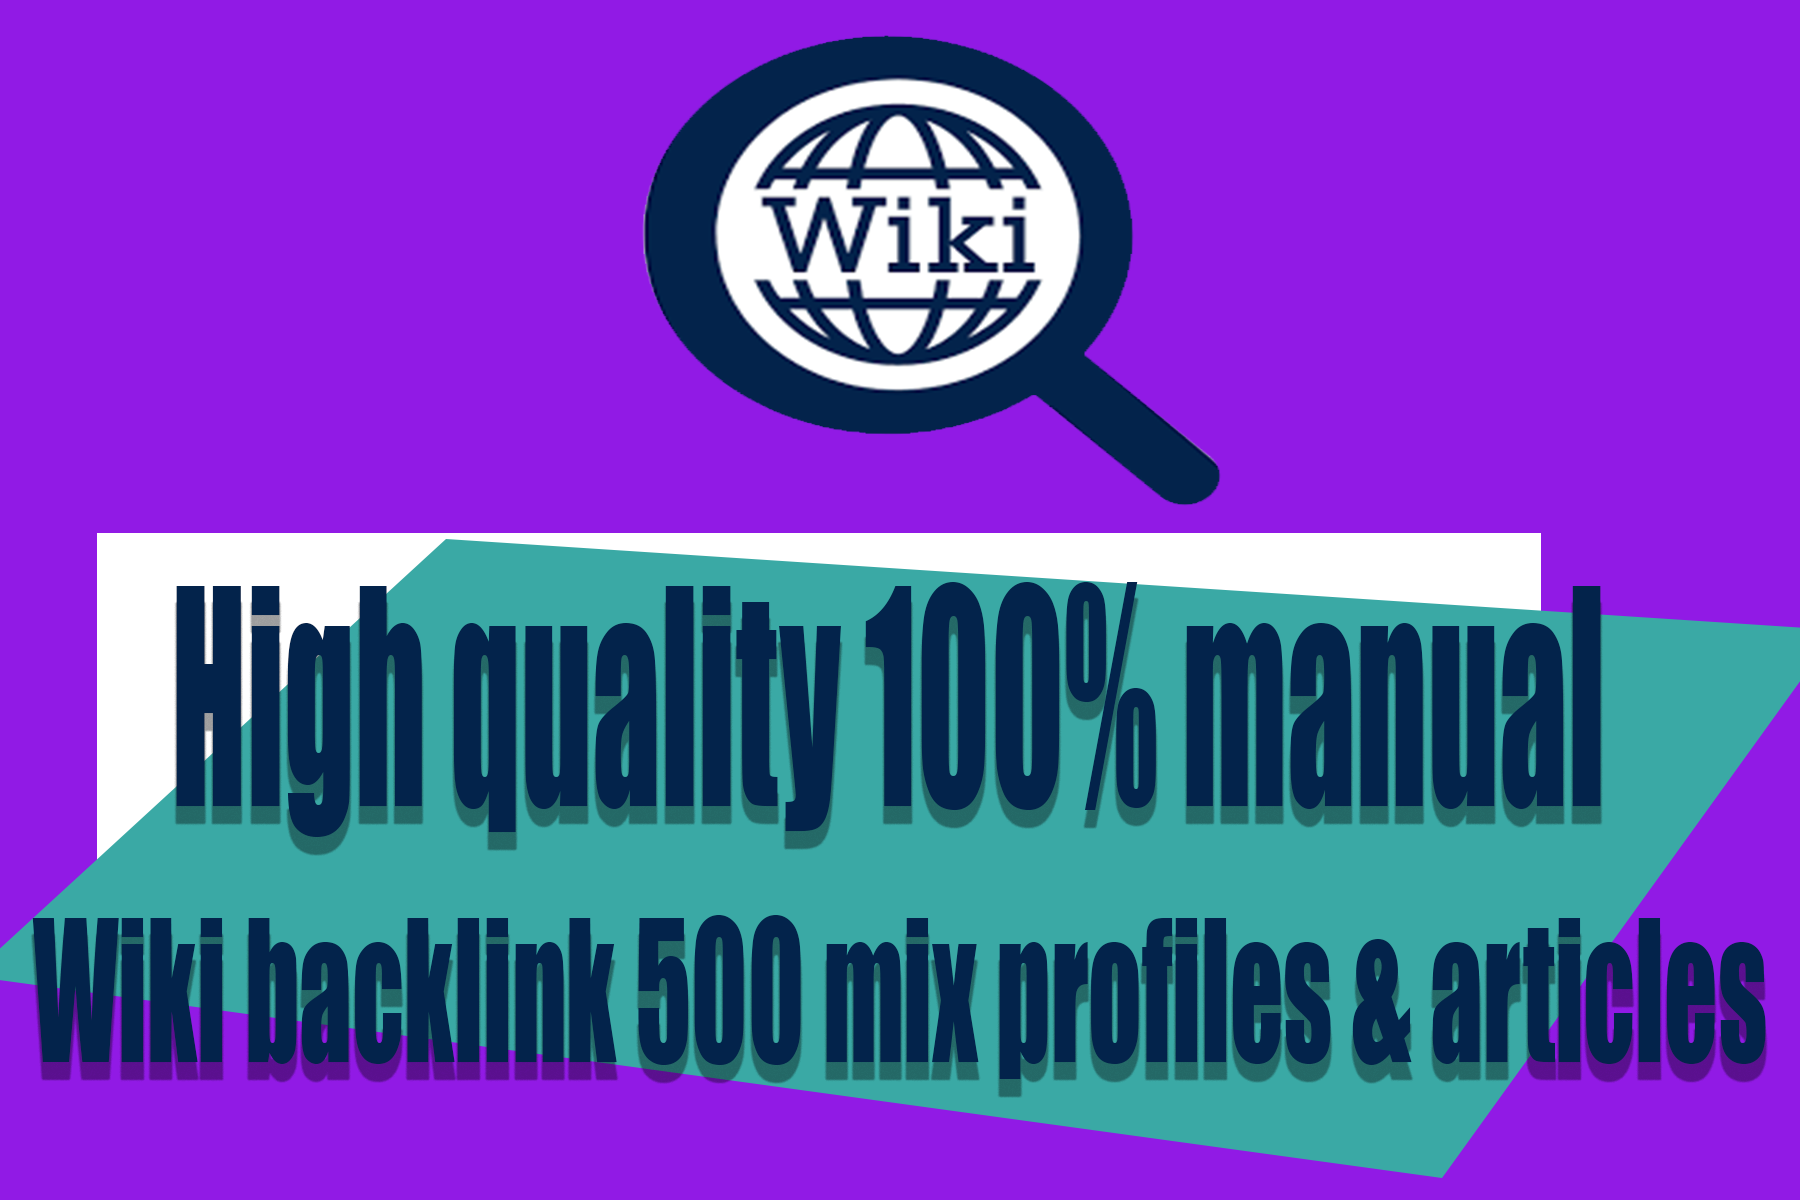 High quality 100 manual Wiki backlink 500 mix profiles & articles